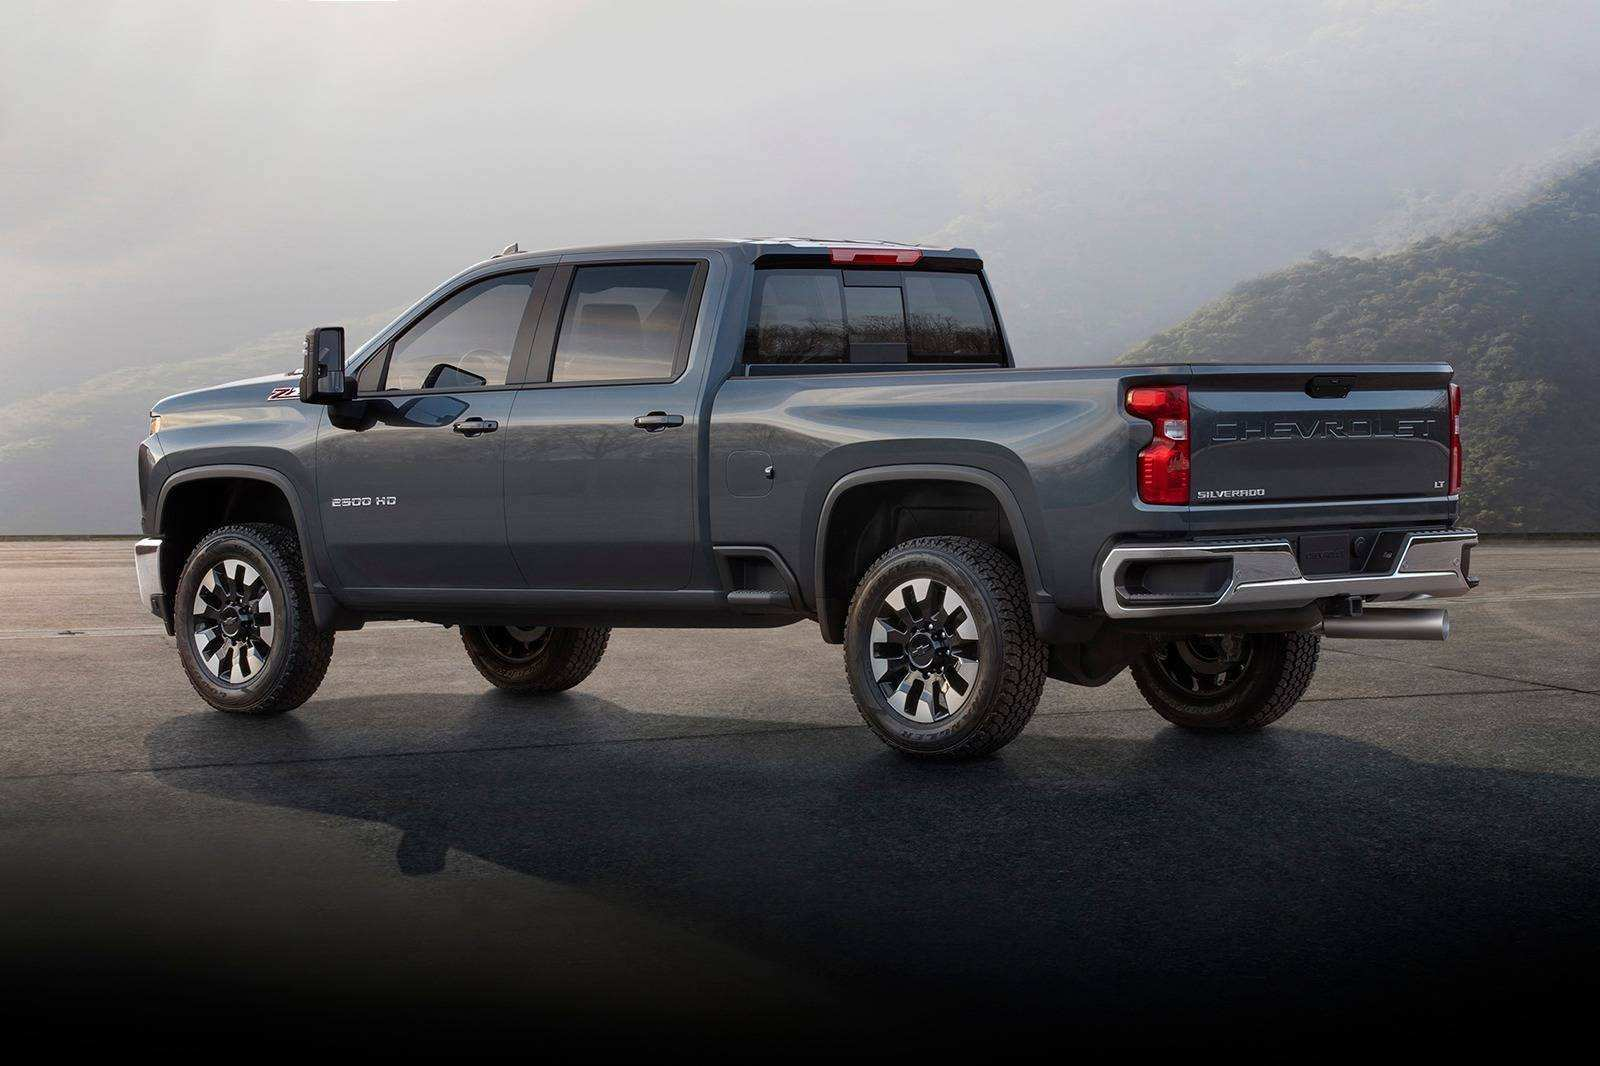 34 All New 2020 Gmc 2500 New Body Style Exterior and Interior for 2020 Gmc 2500 New Body Style